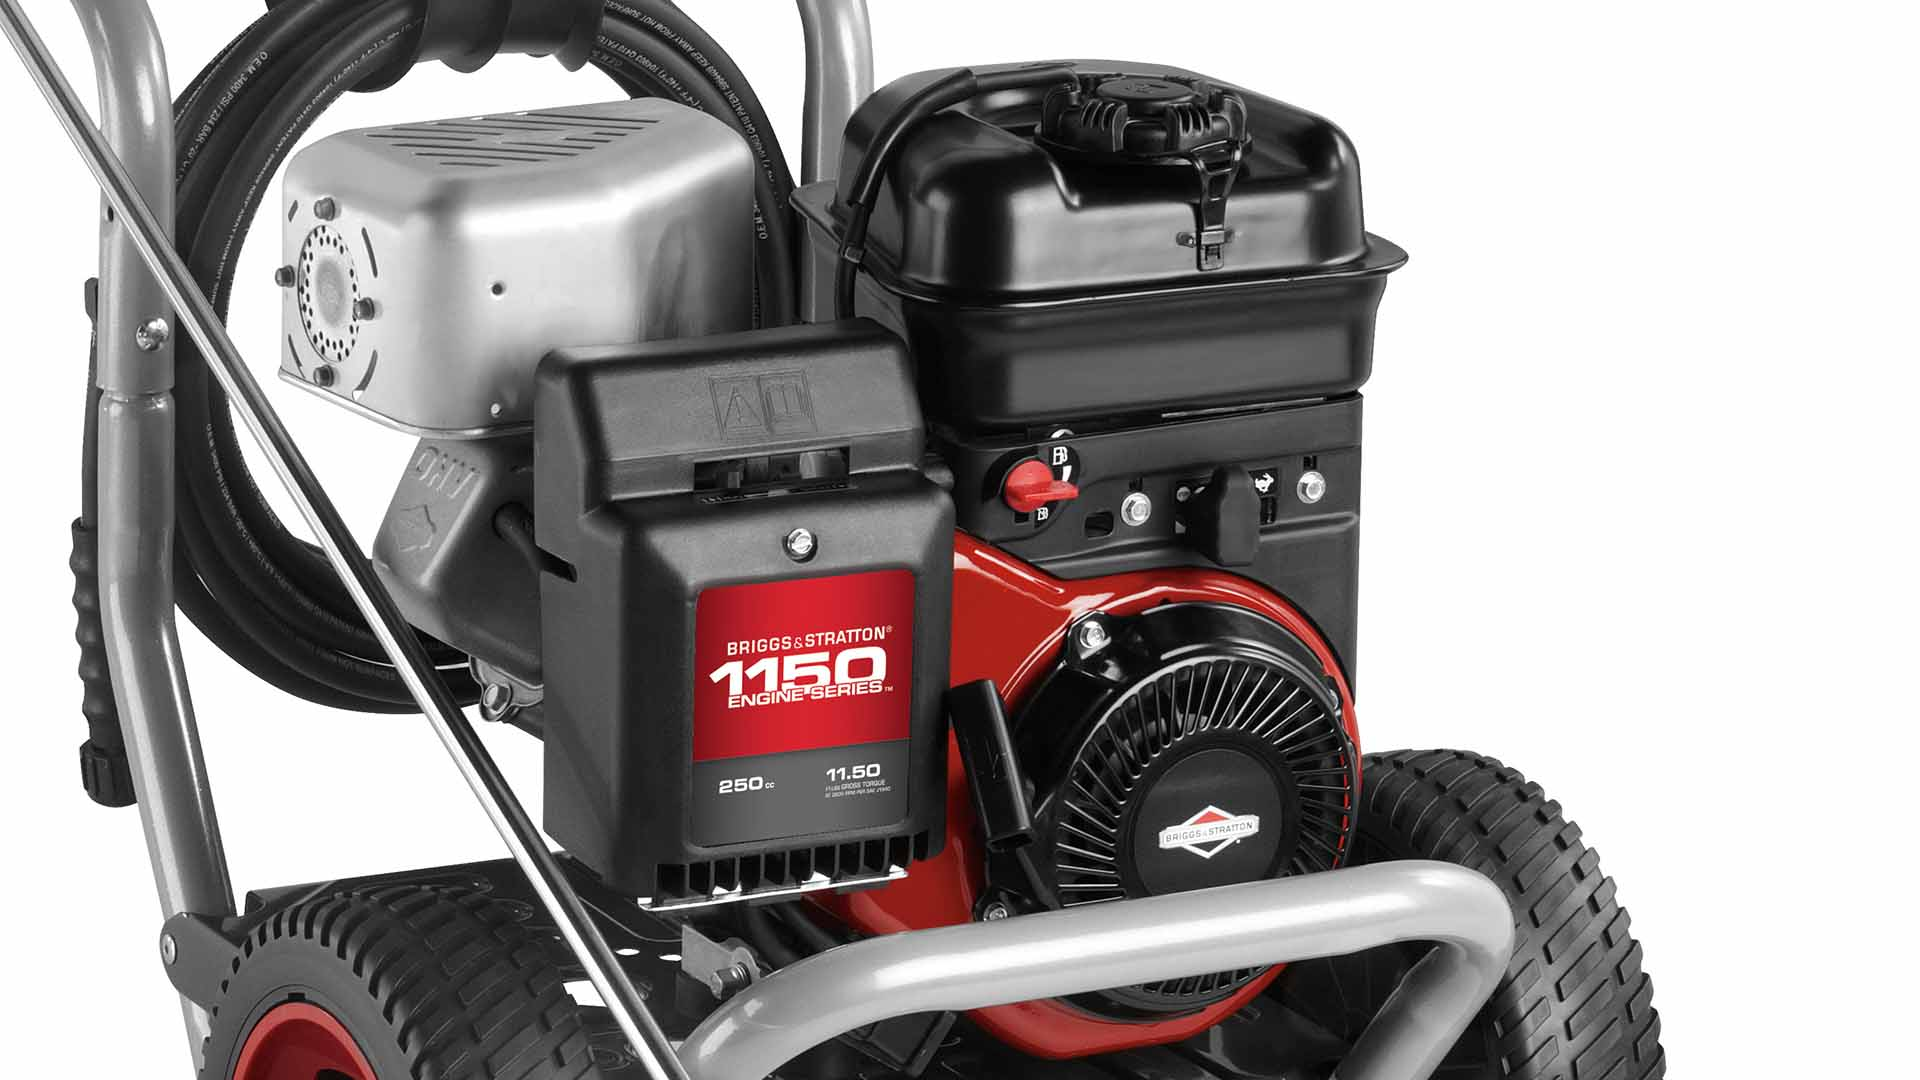 Briggs & Stratton 1150 Series™ OHV Engine (250cc)